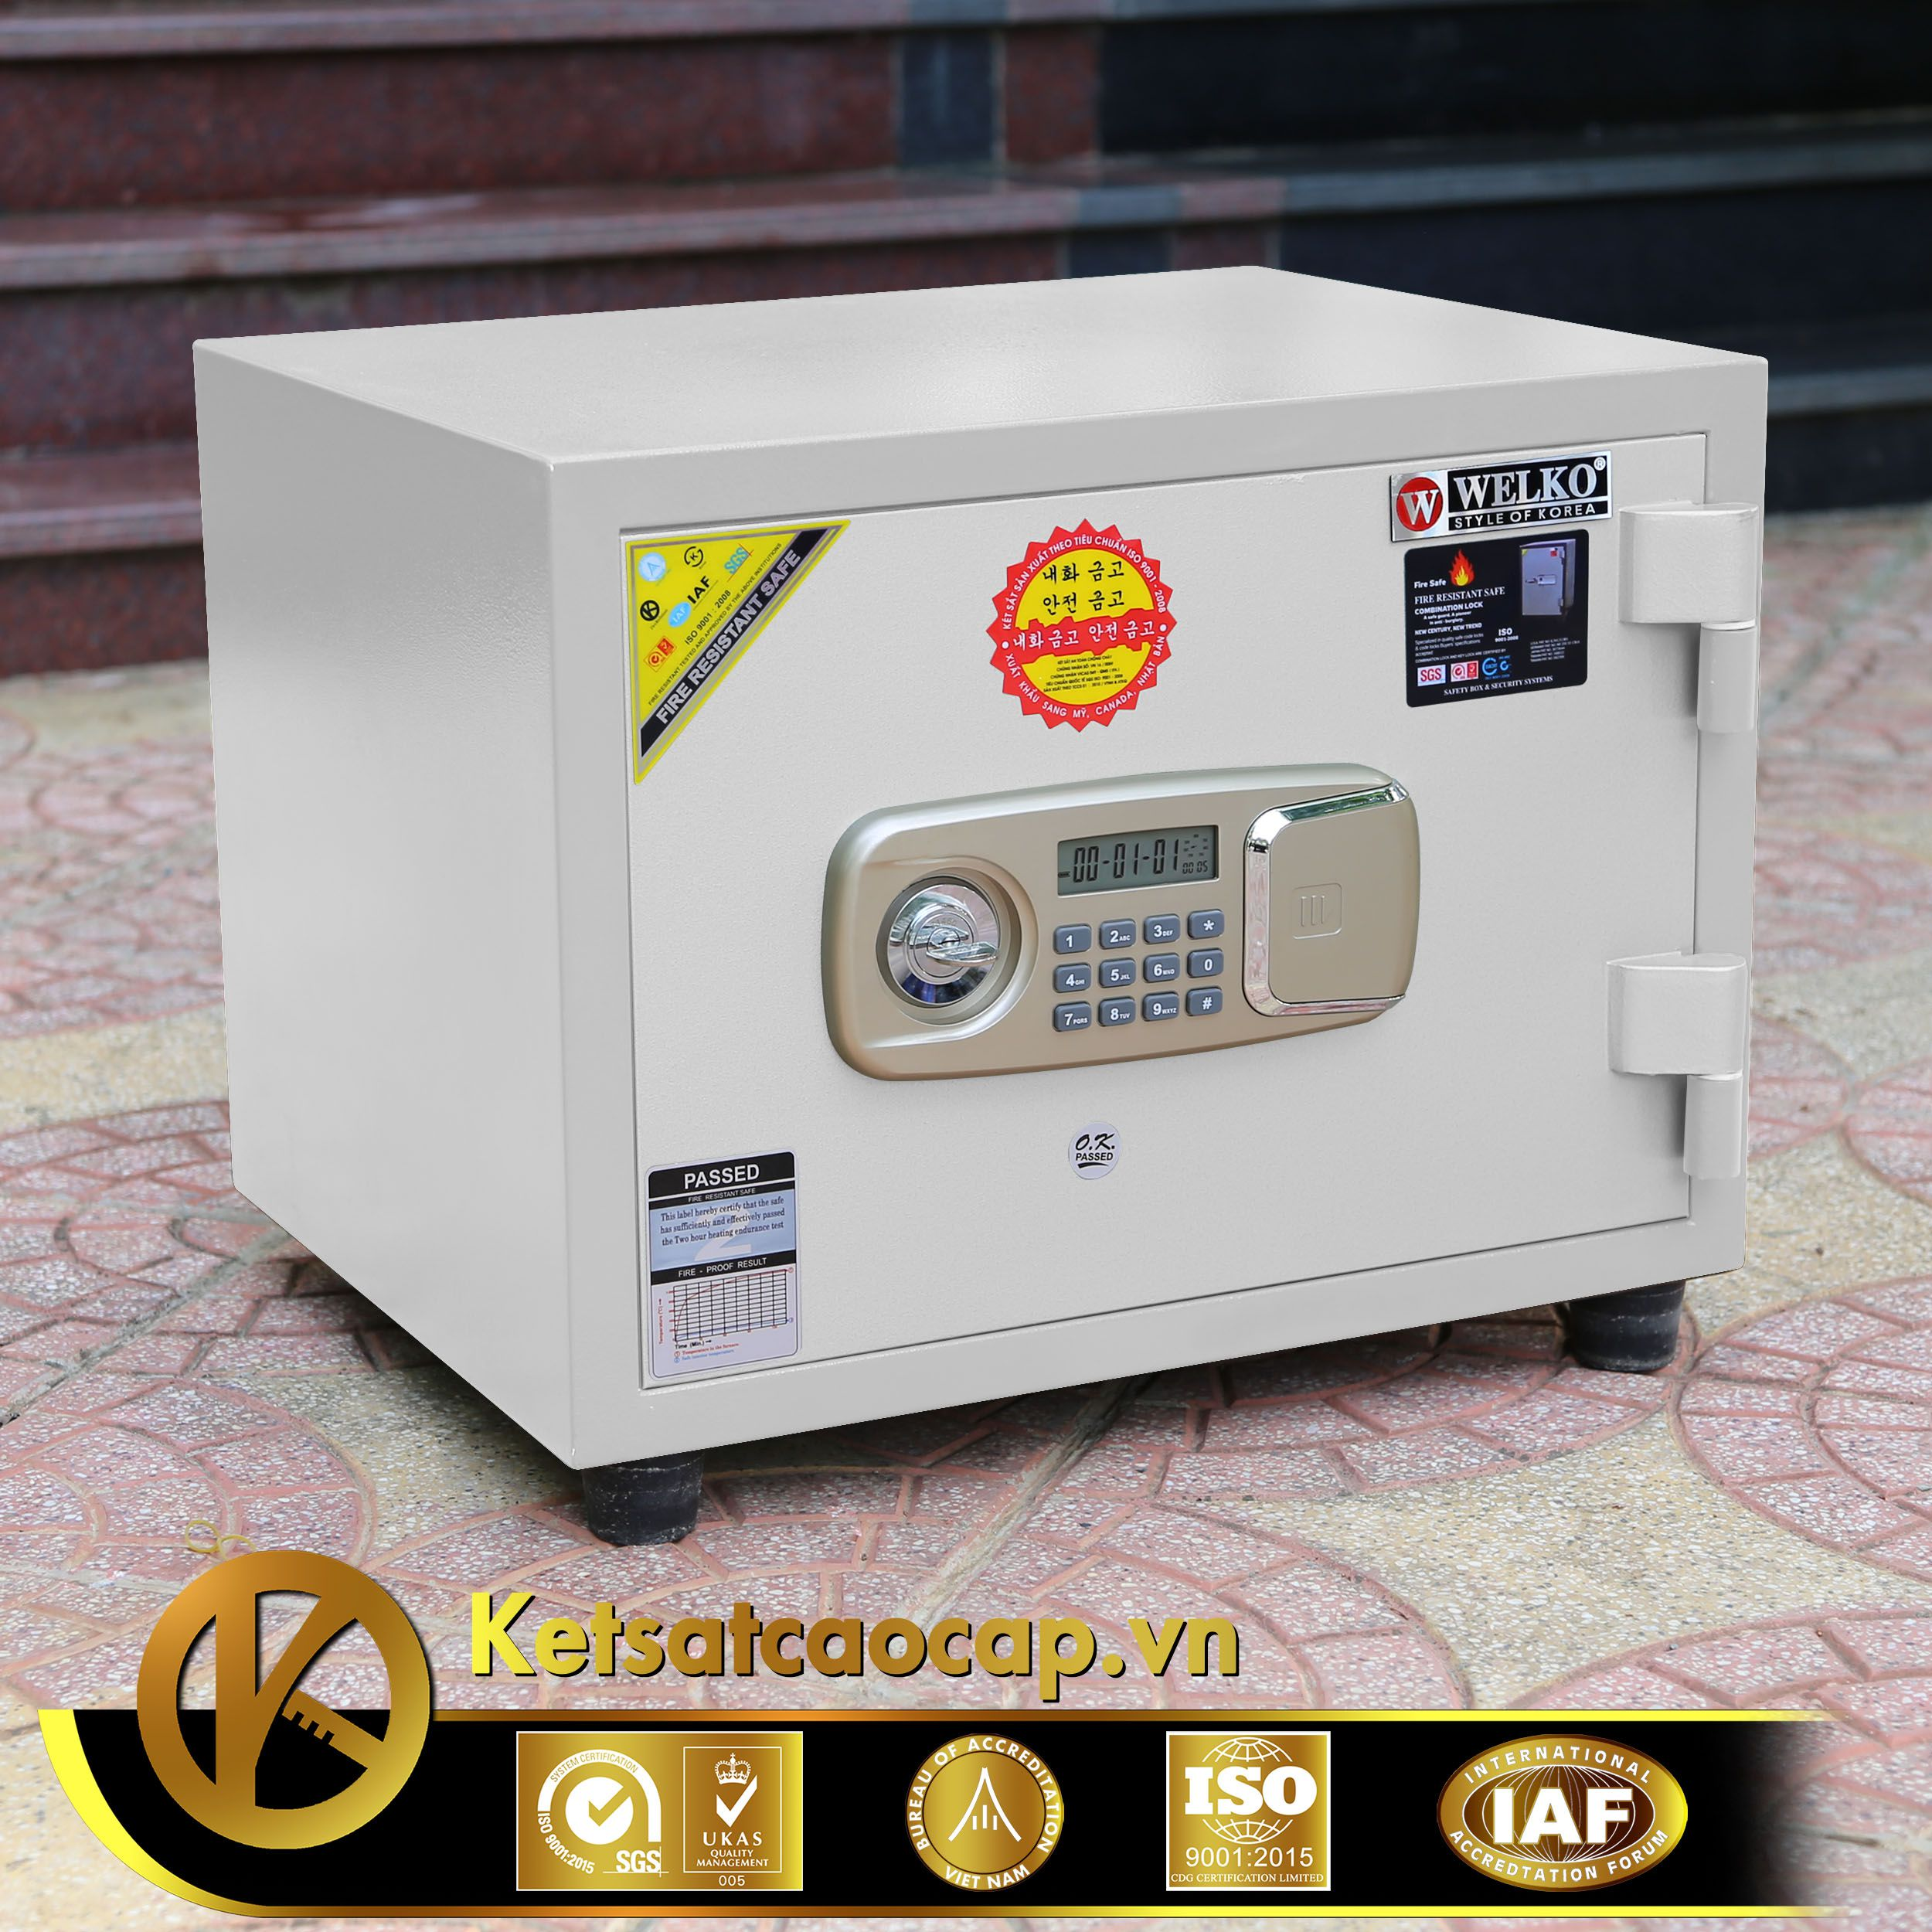 cach doi ma ket sat thanh ly WELKO Fire Resistant Safes